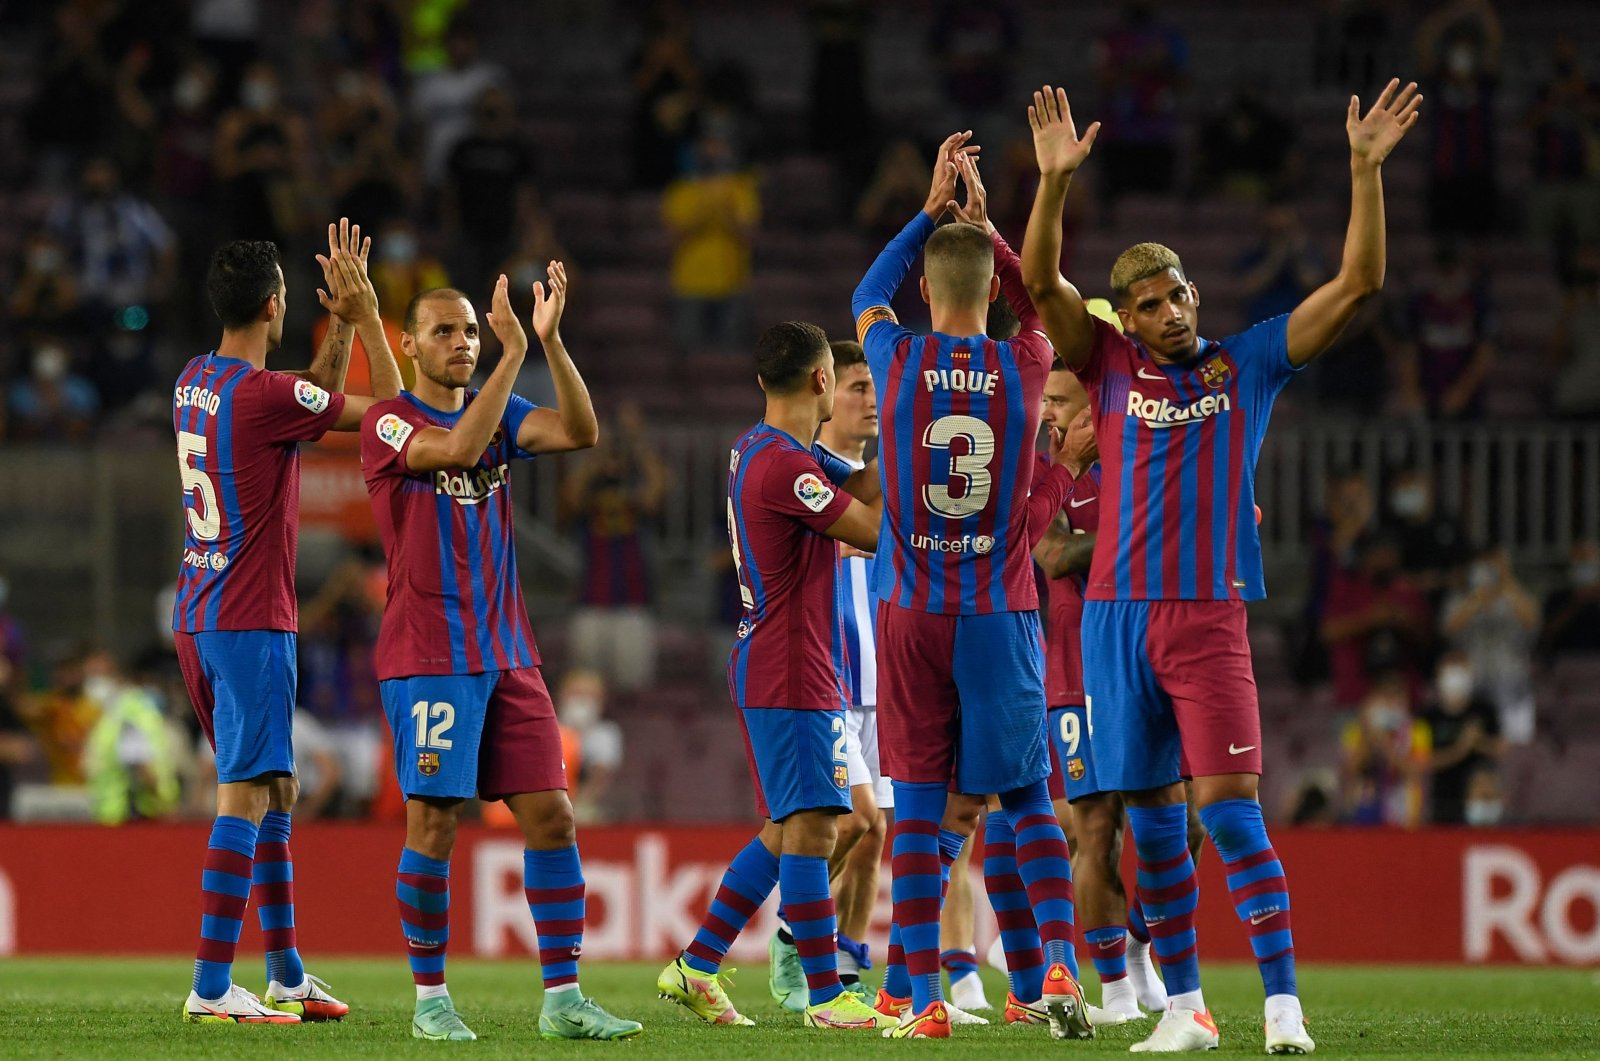 Barcelona players celebrate during a Spanish La Liga match against Real Sociedad at Camp Nou, Barcelona, Spain, Aug. 15, 2021. (AFP Photo)